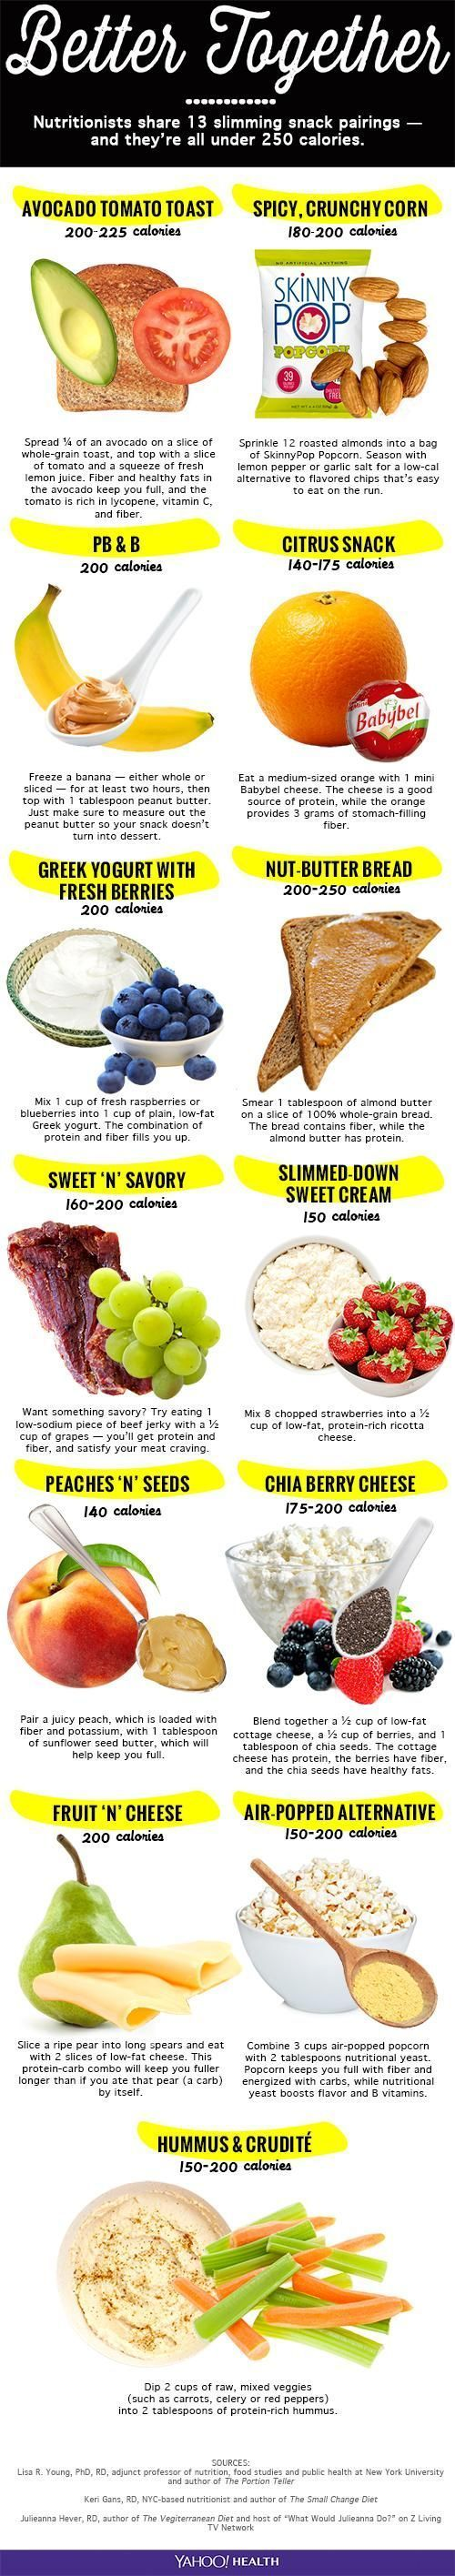 The best belly fat burning supplements photo 5